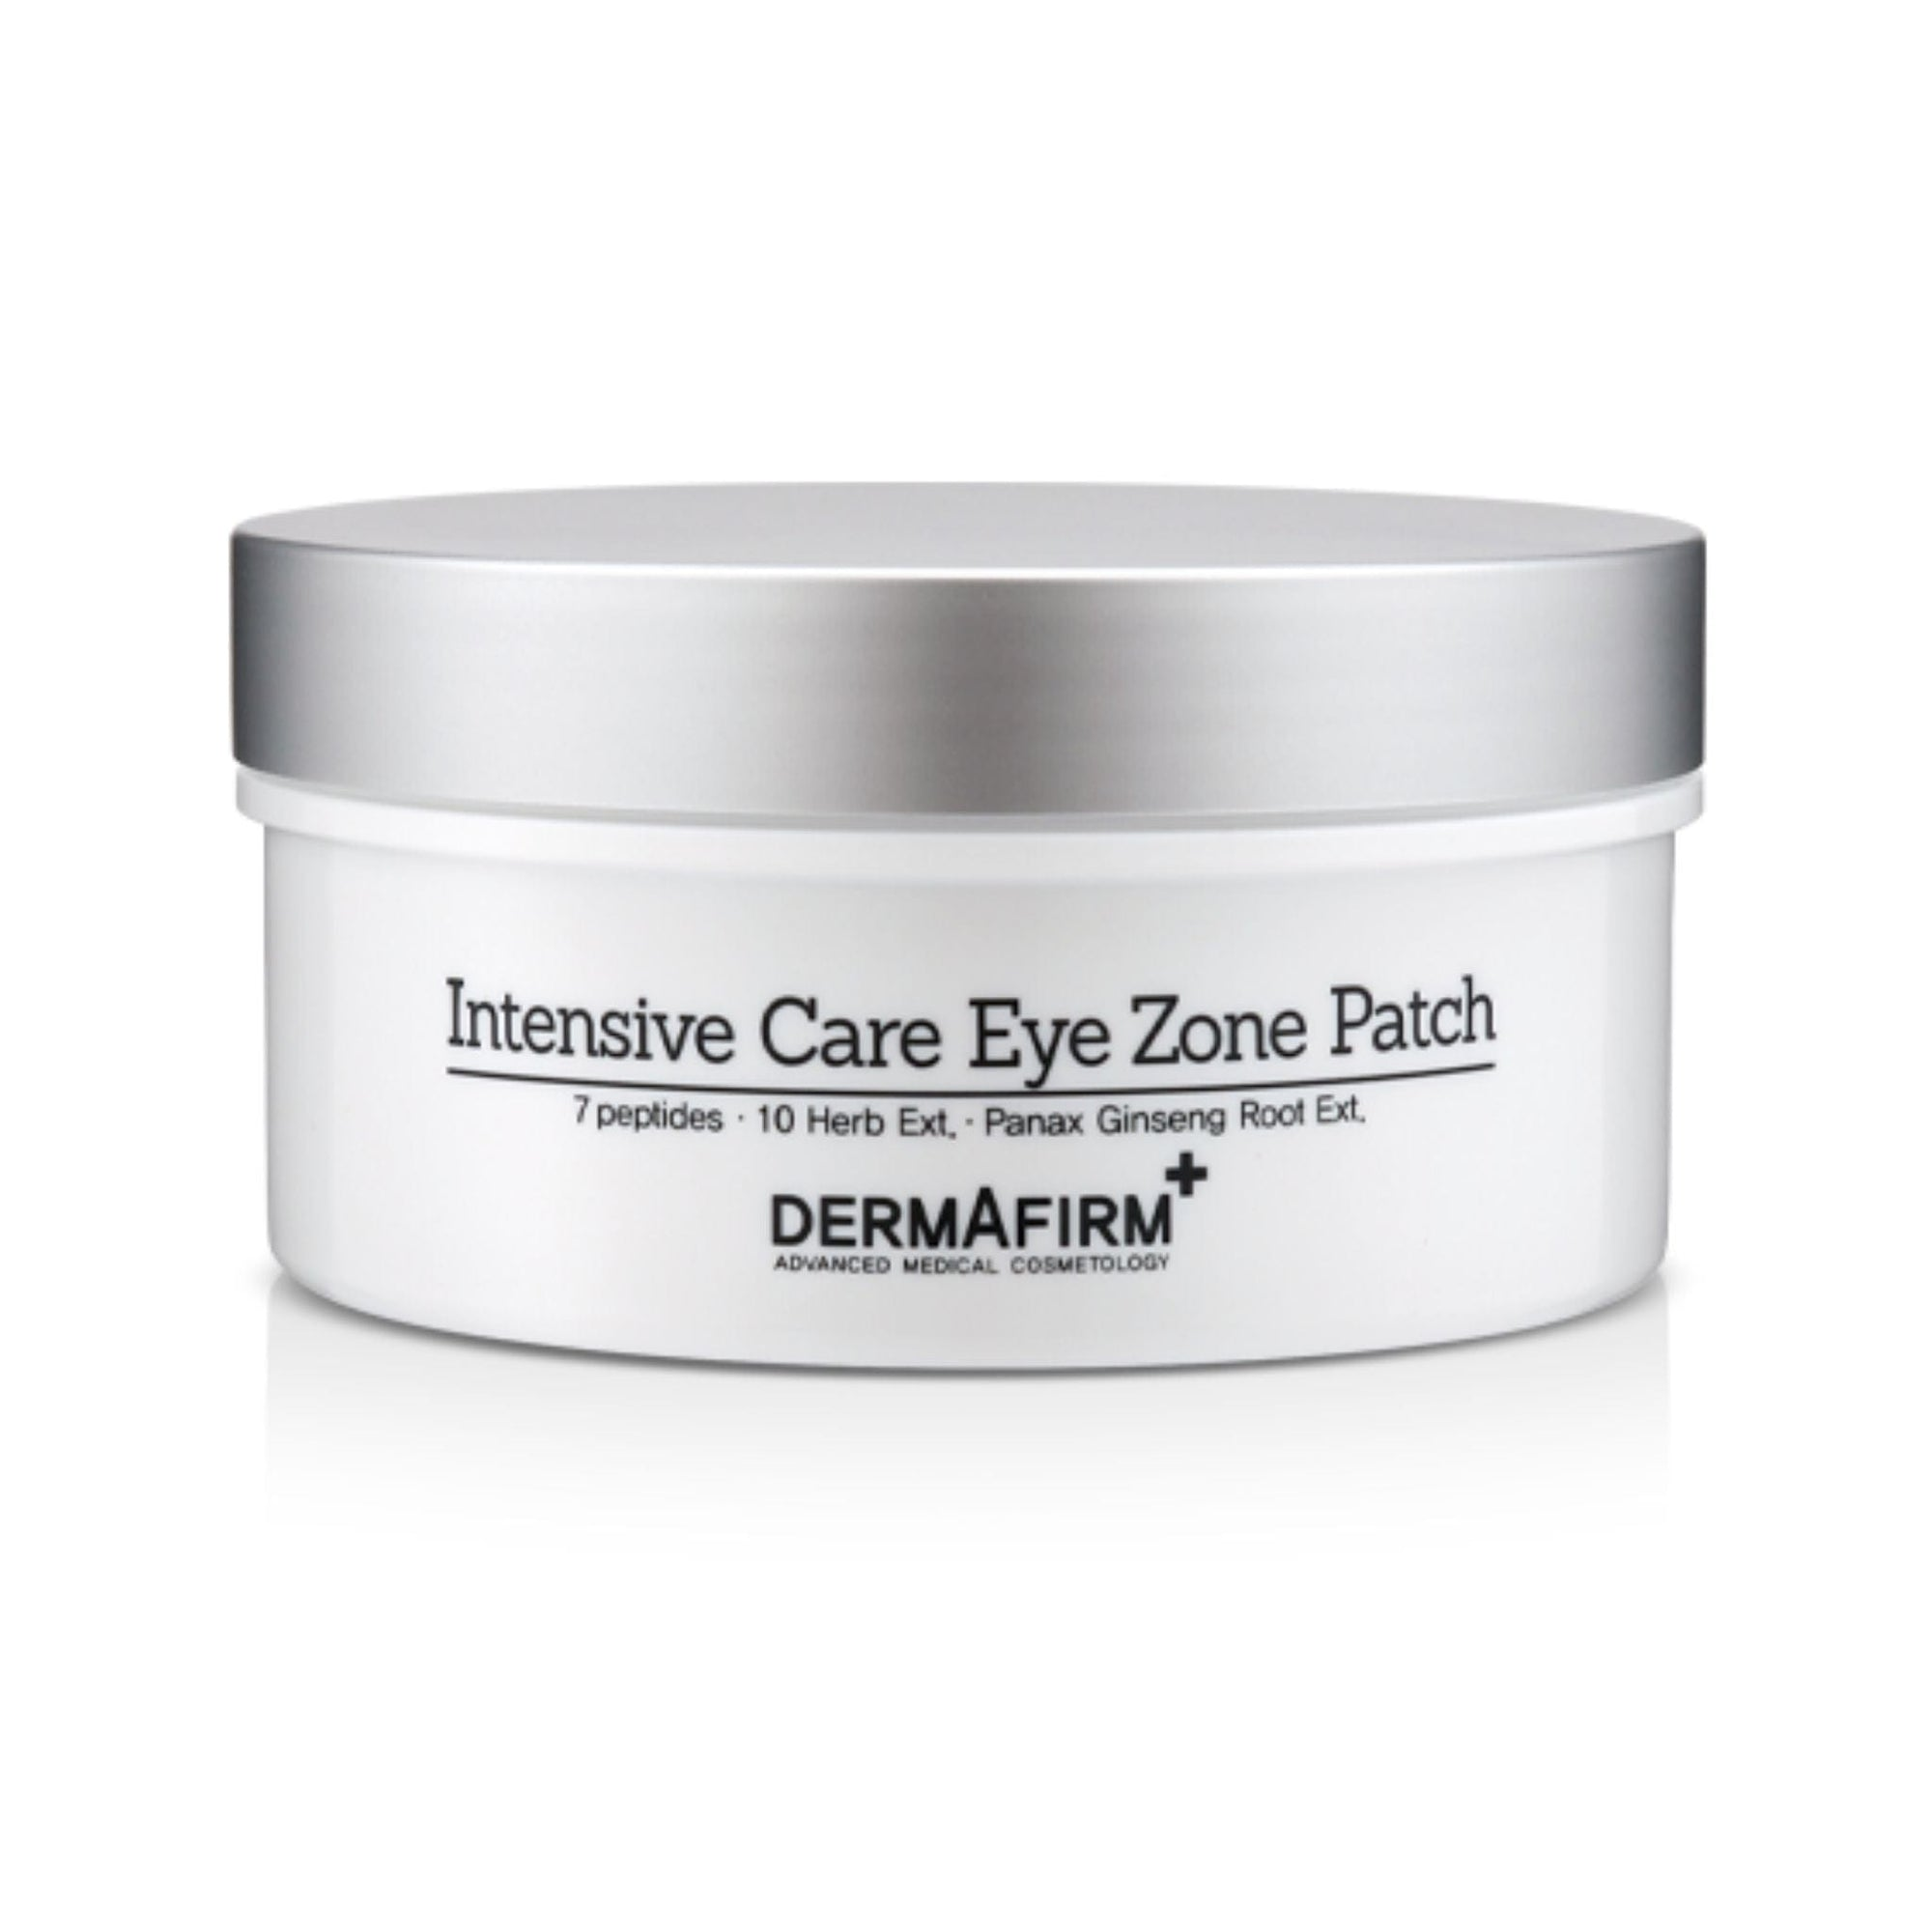 Intensive Care Eye Zone Patch (50 patches)